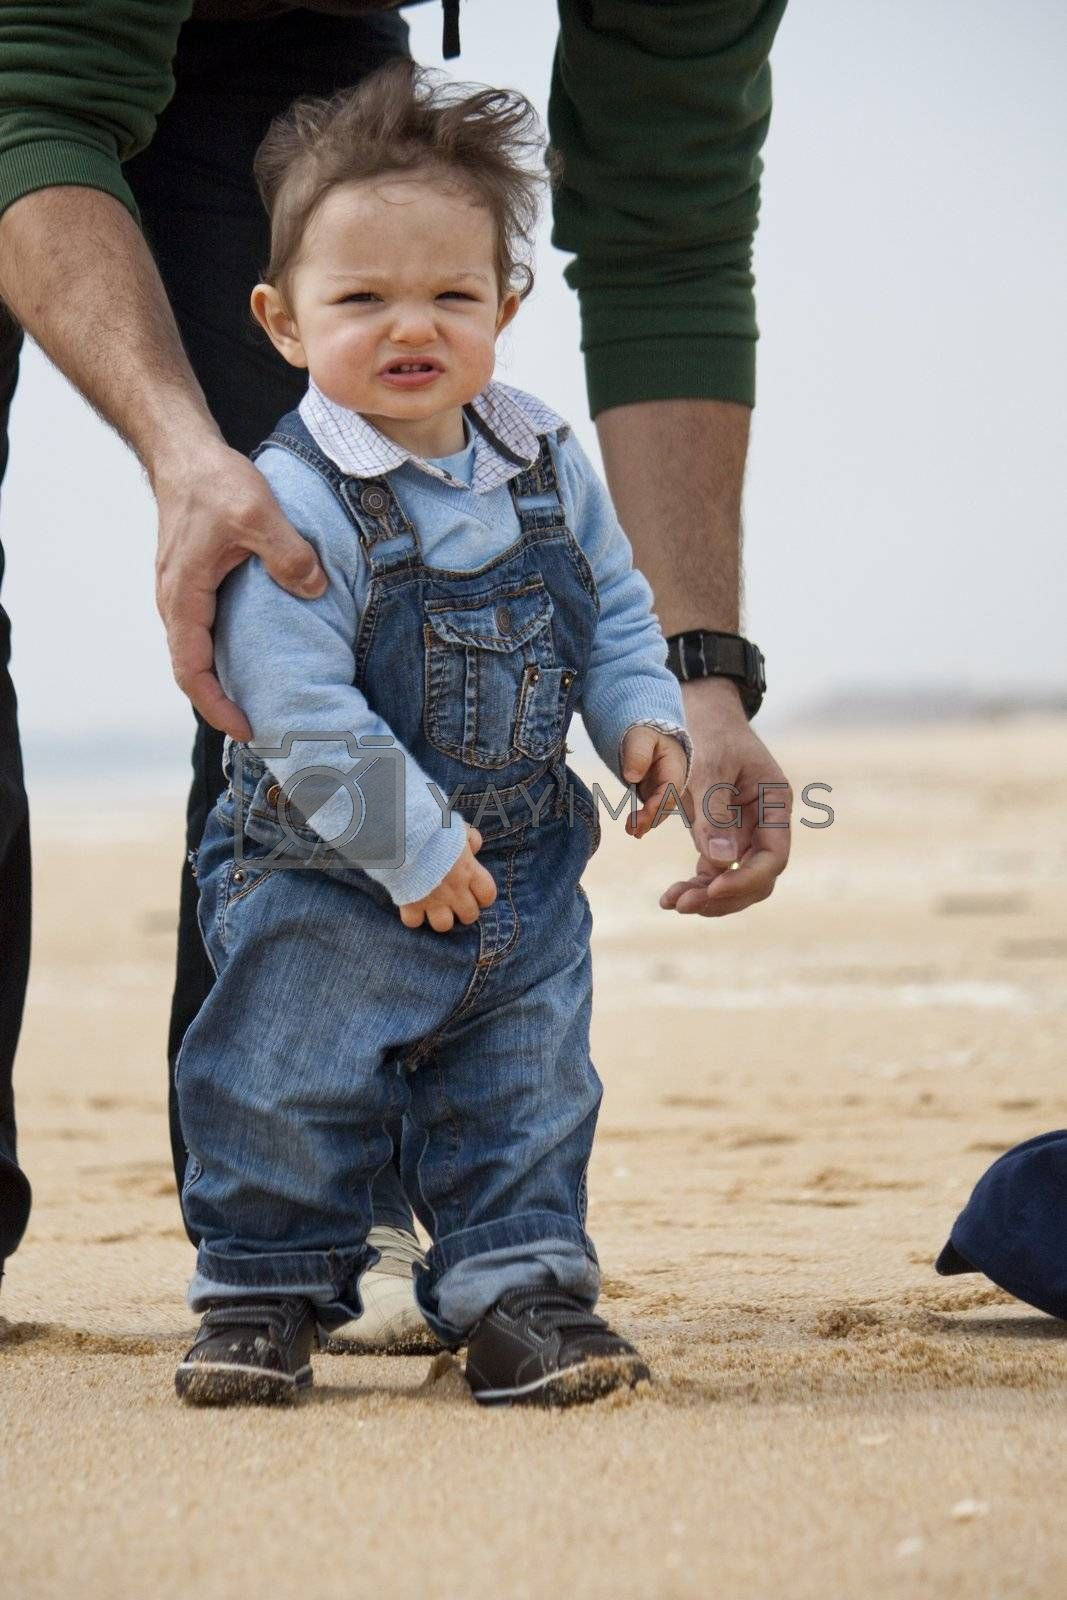 View of a happy young child walking on the beach.